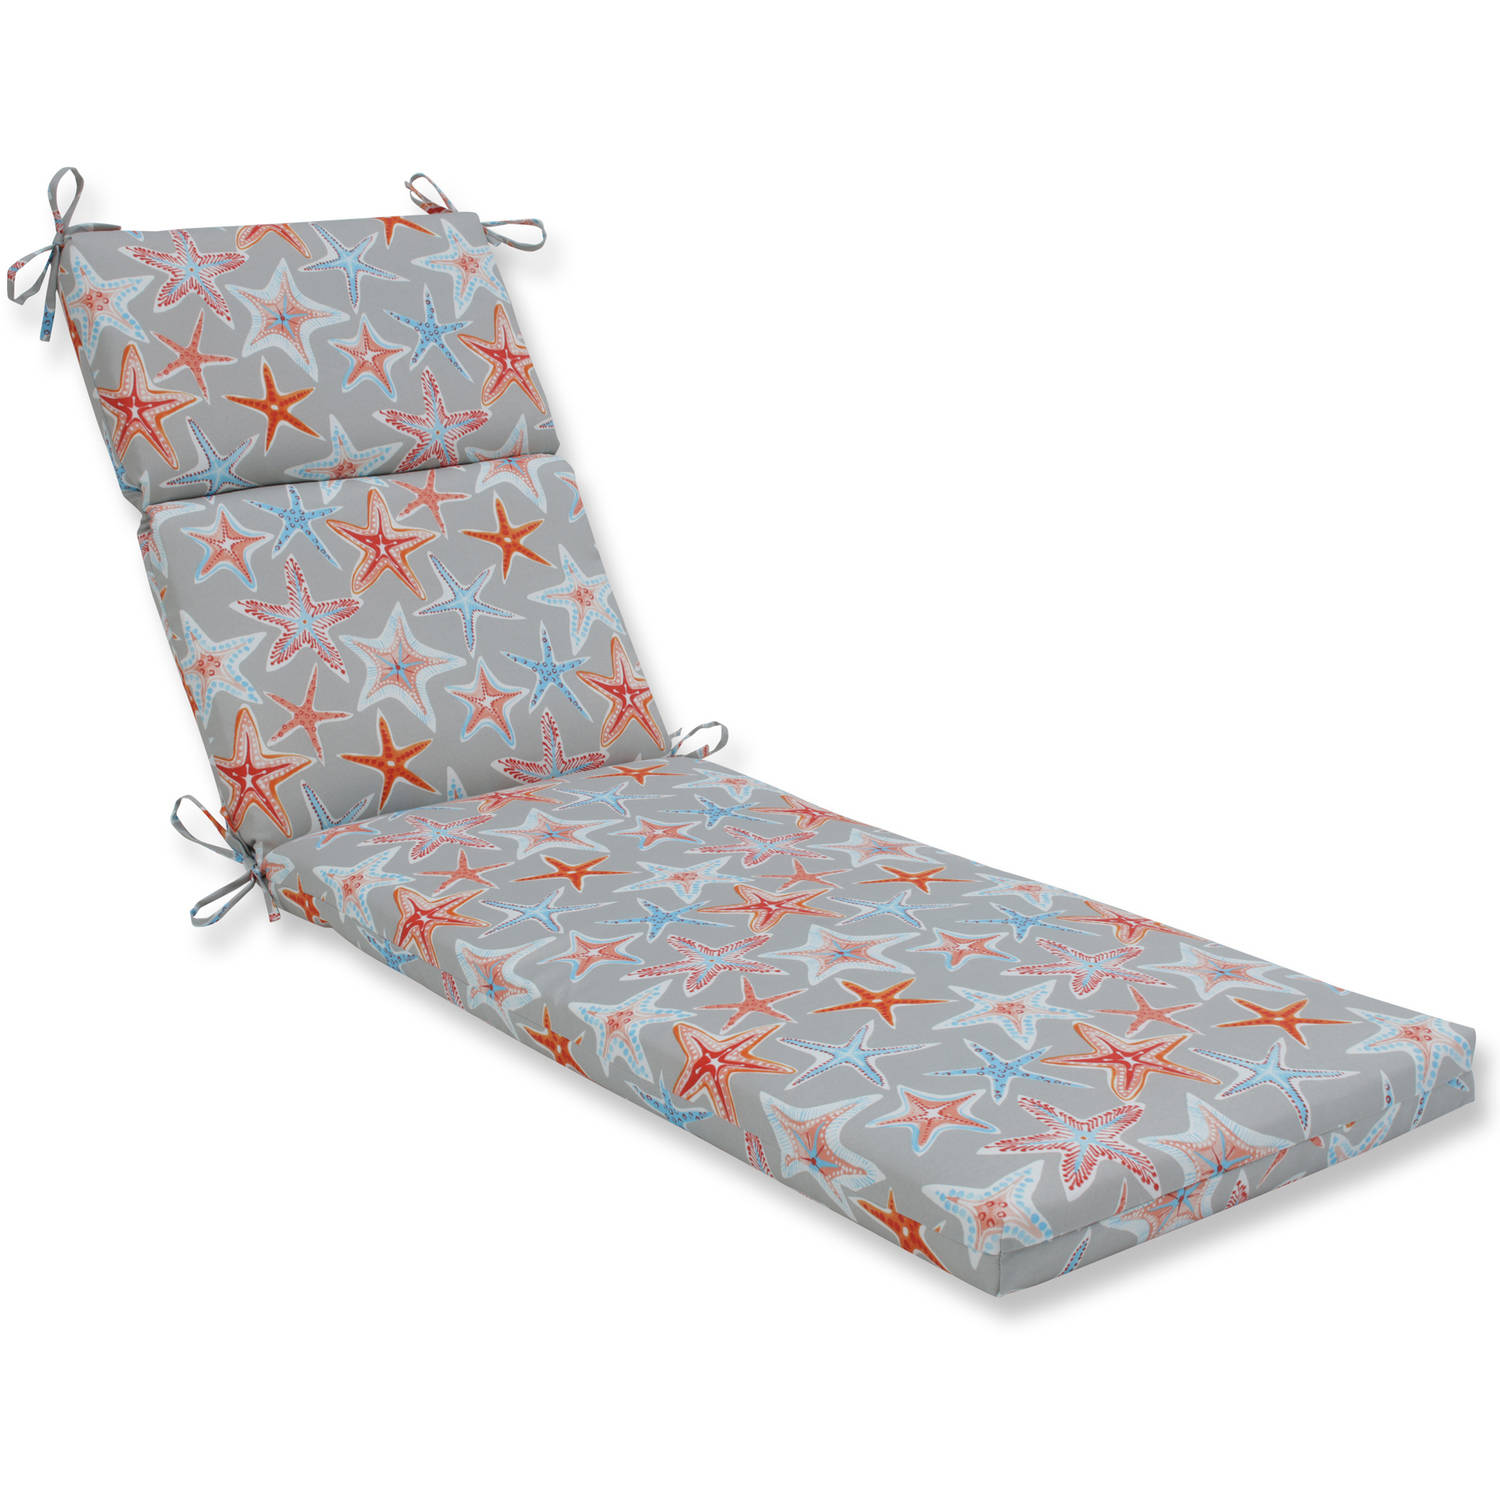 Pillow Perfect Outdoor/Indoor Stars Collide Pewter Chaise Lounge Cushion